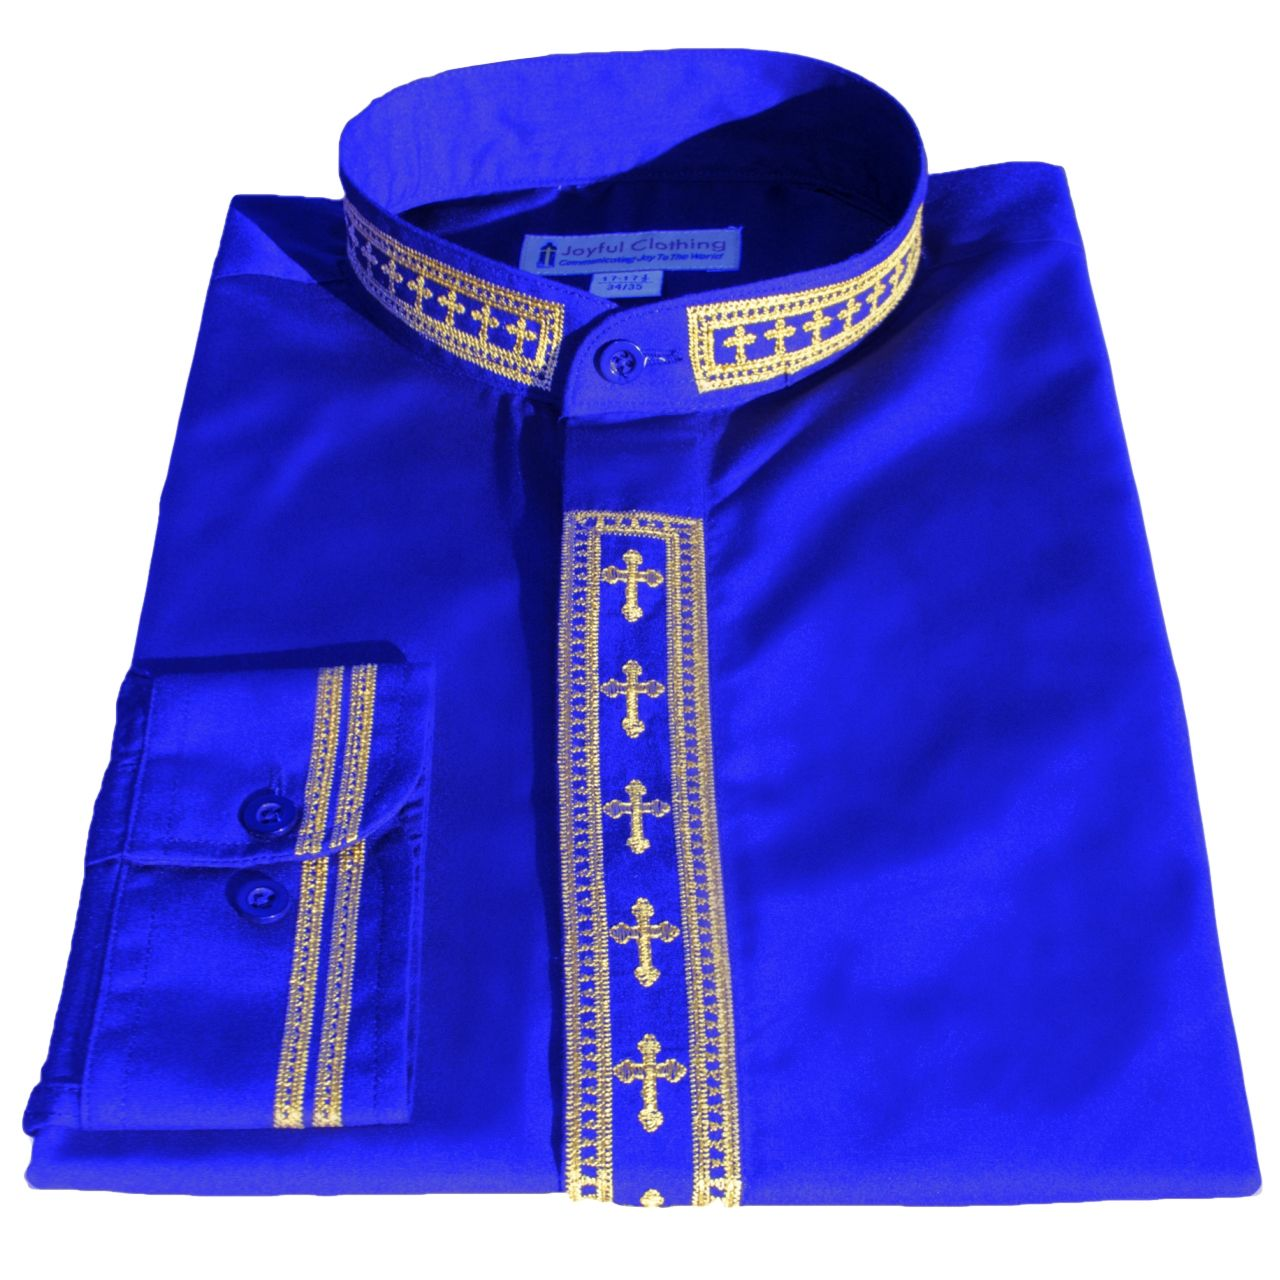 318. Men's Long-Sleeve Clergy Shirt With Fine Embroidery - Royal/Gold